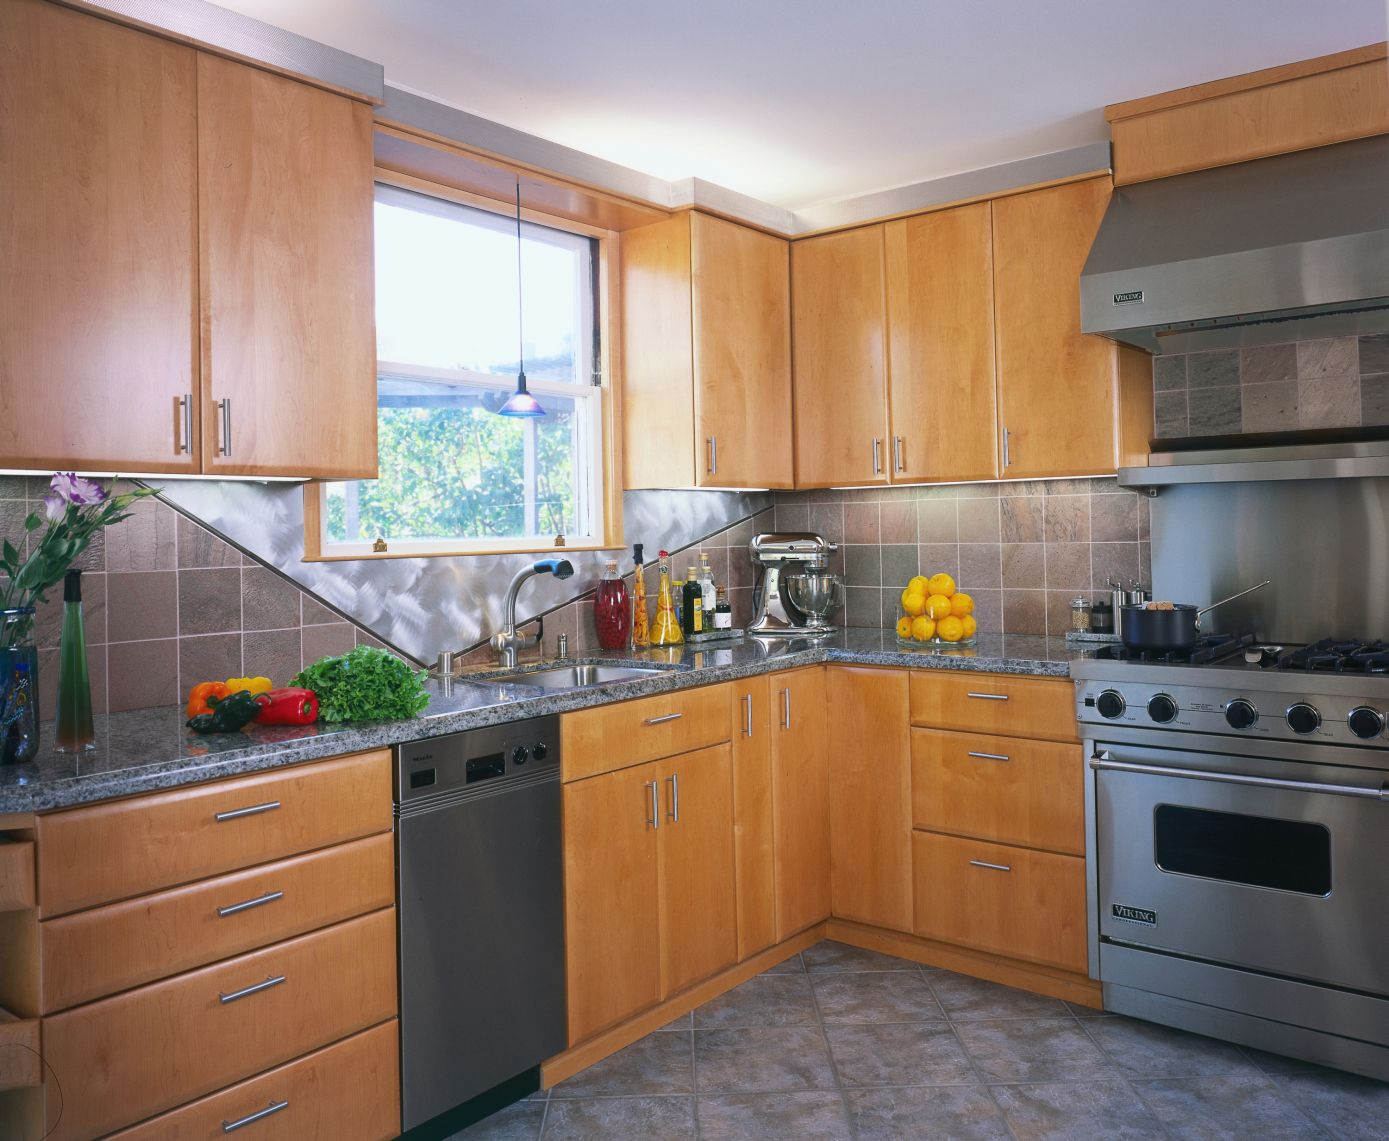 2018 Kitchen Remodel San Jose   Lowes Paint Colors Interior Check More At  Http:/